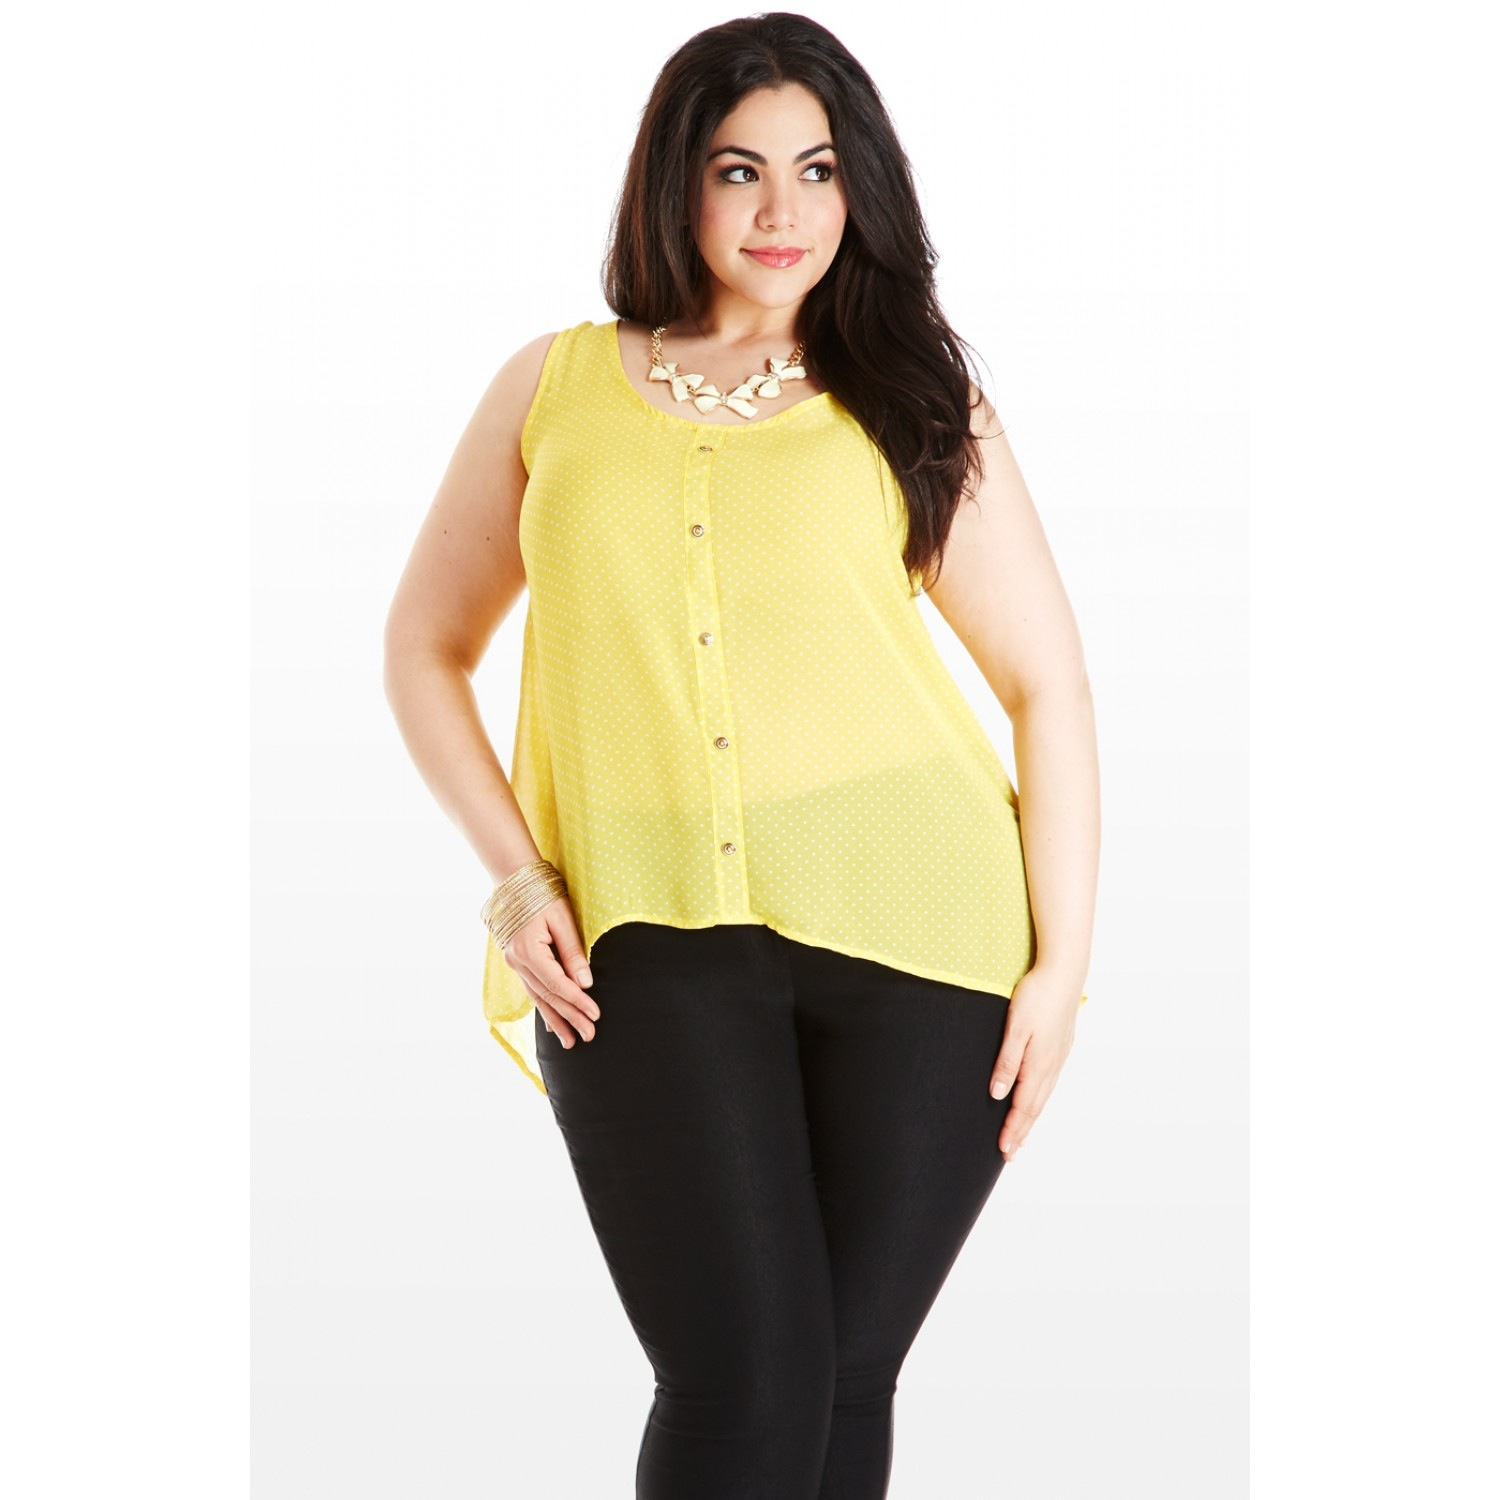 plus size attire jcpenney